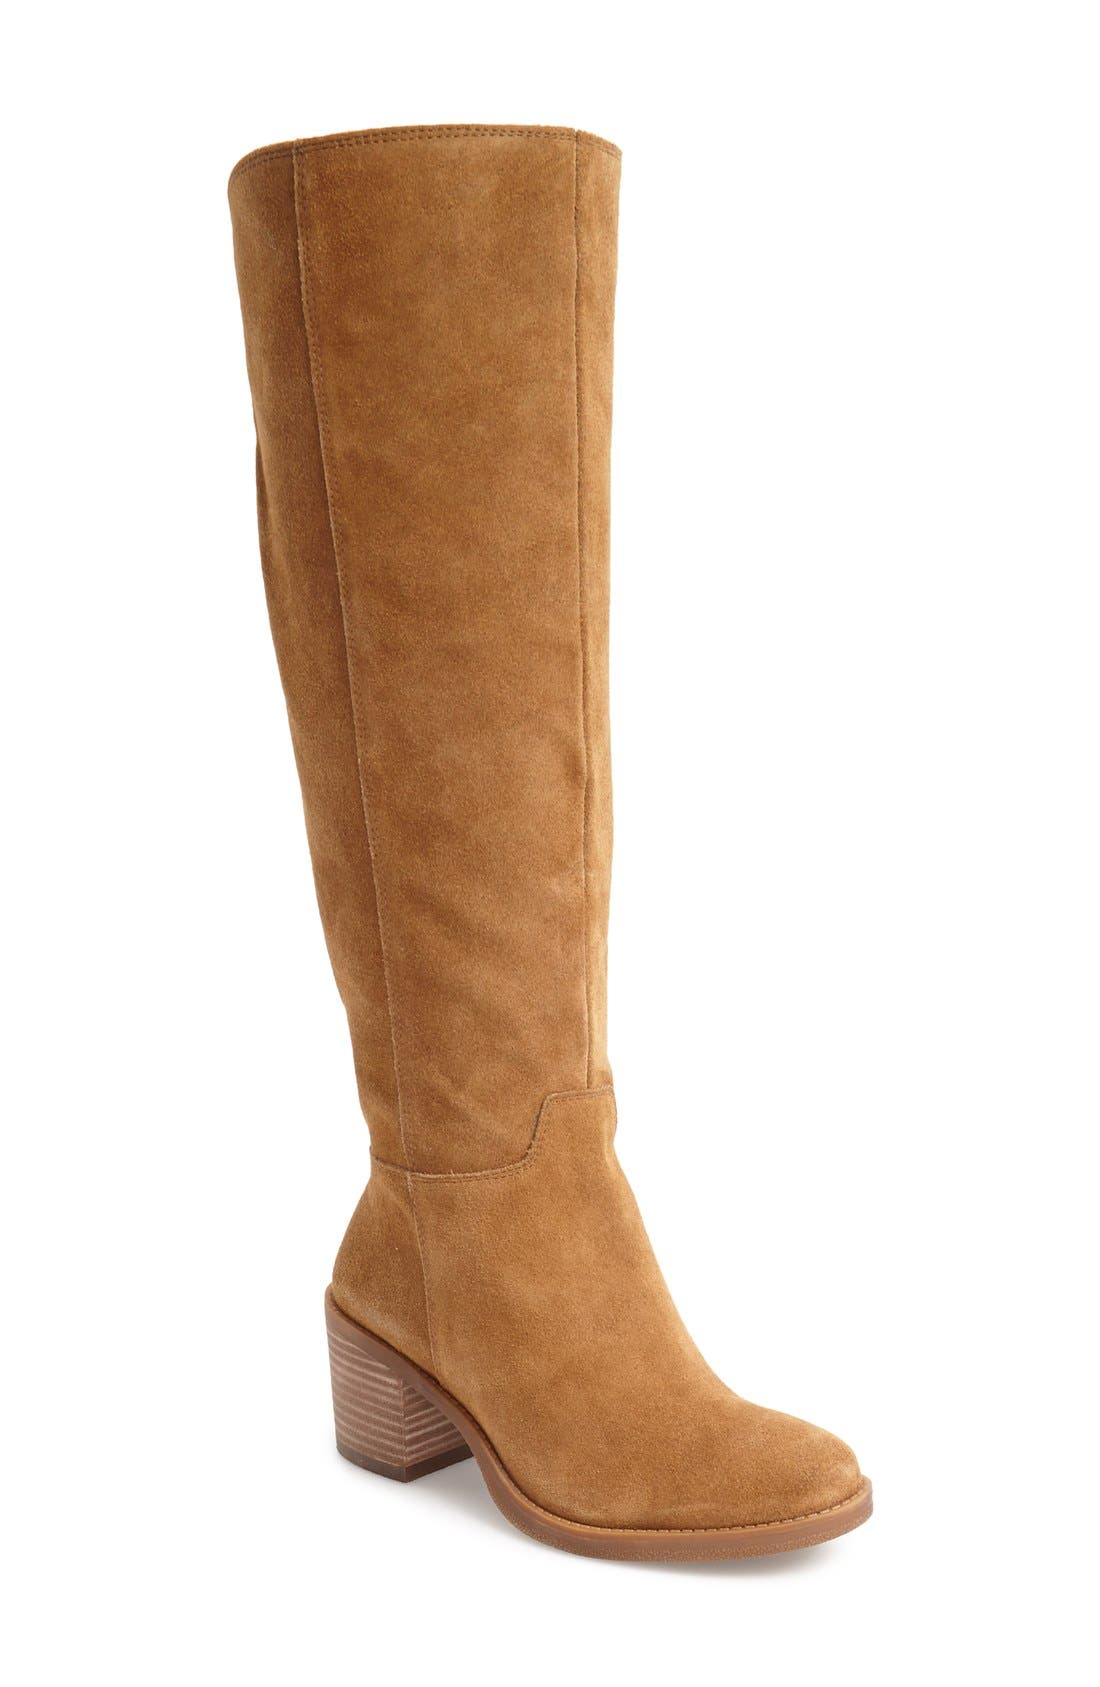 Main Image - Lucky Brand Ritten Tall Boot (Women)